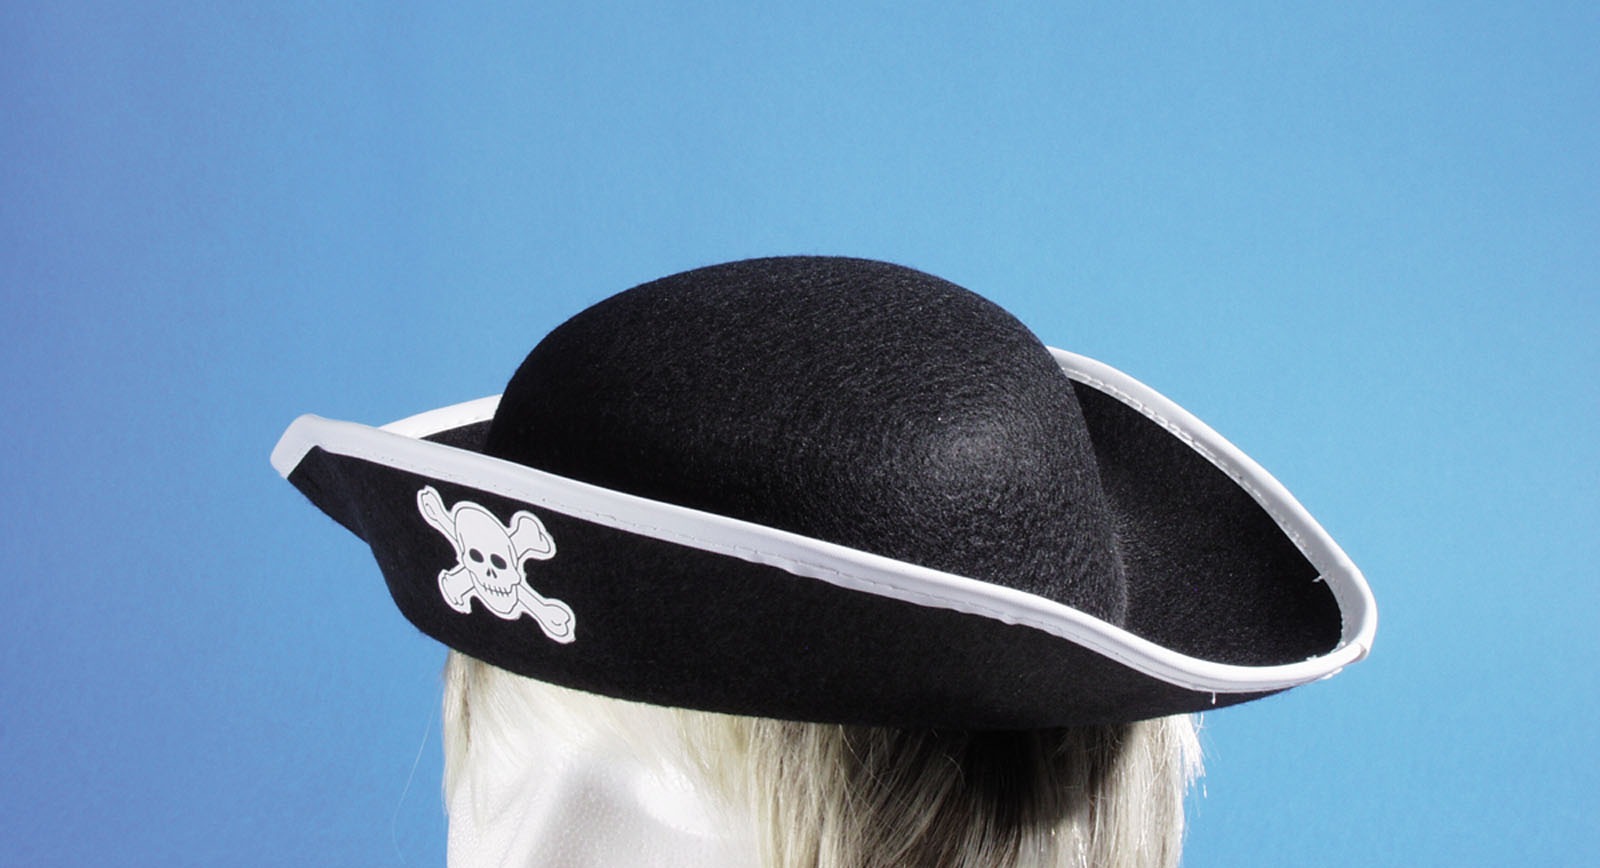 Star Power Pirate Skull and Crossbones Costume Hat, Black, One Size by Loftus International